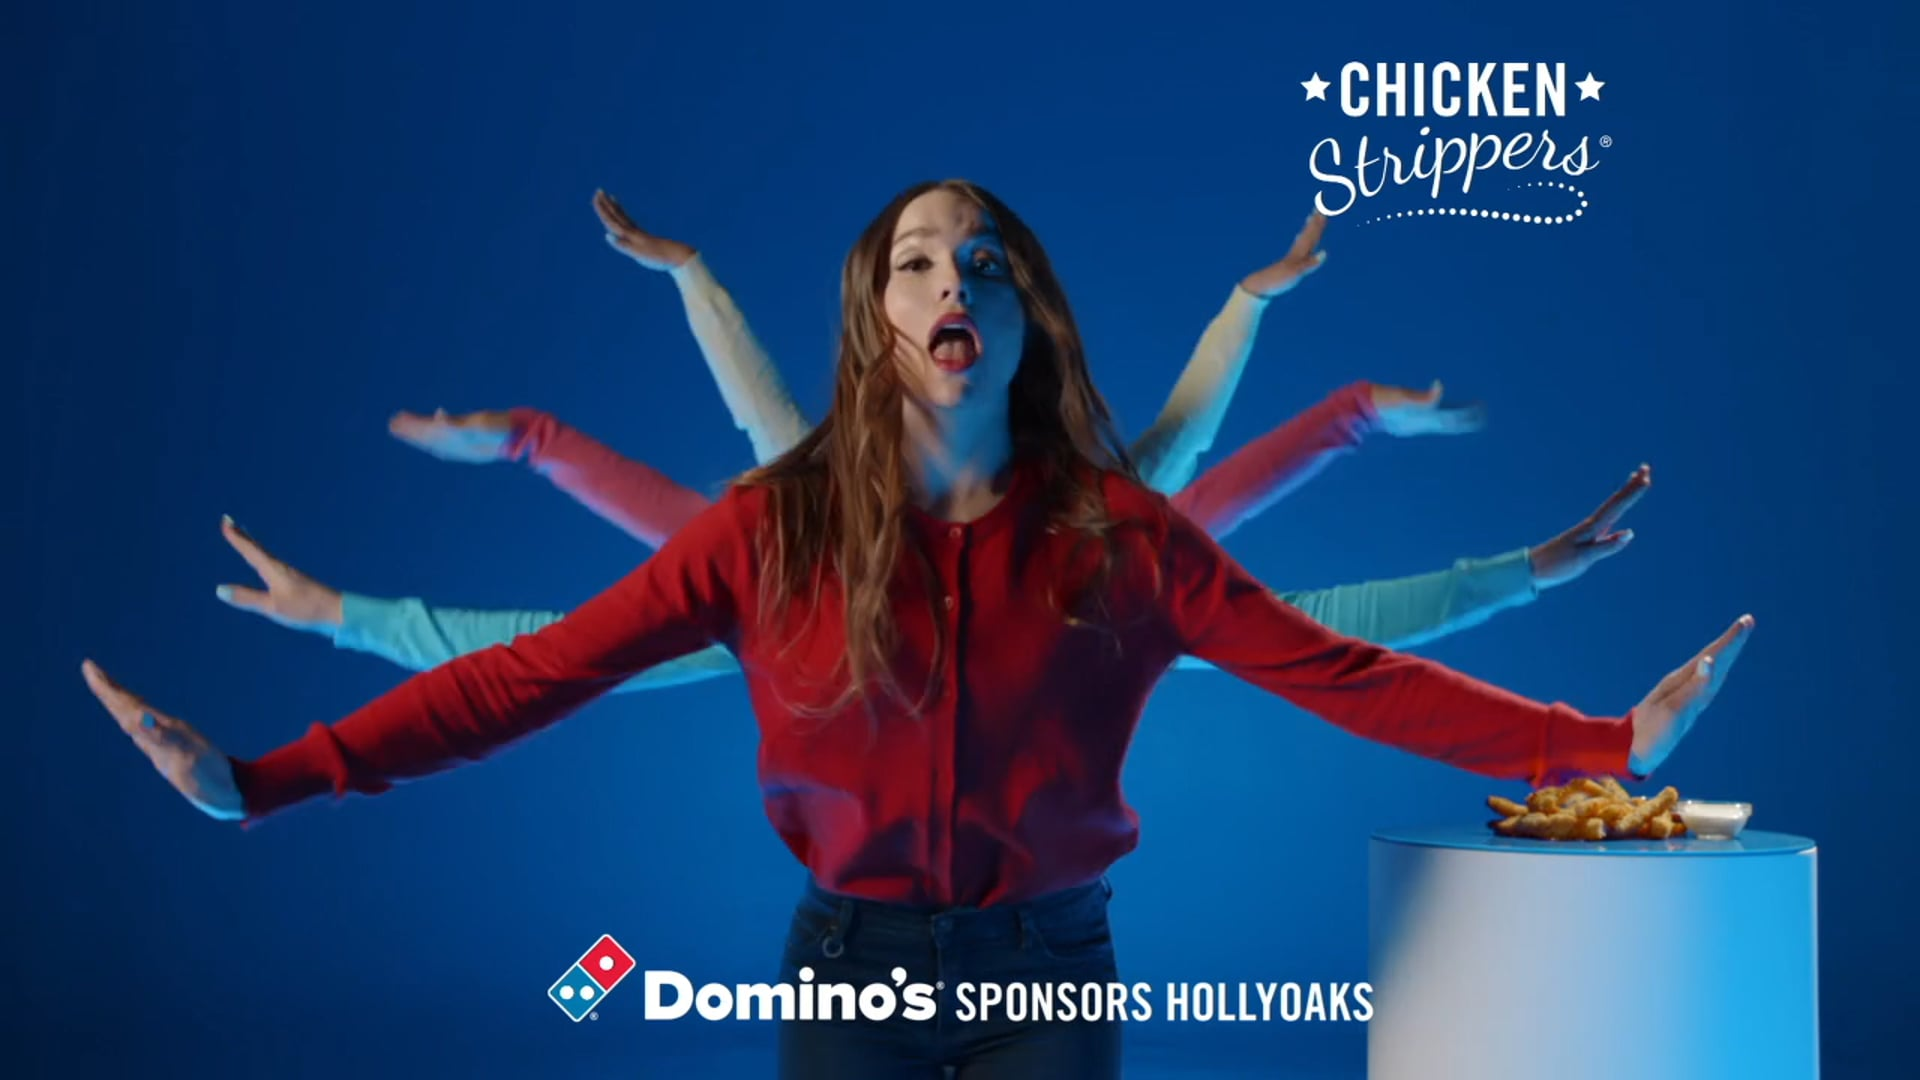 HollyOaks Dominos Ident Chicken Dippers